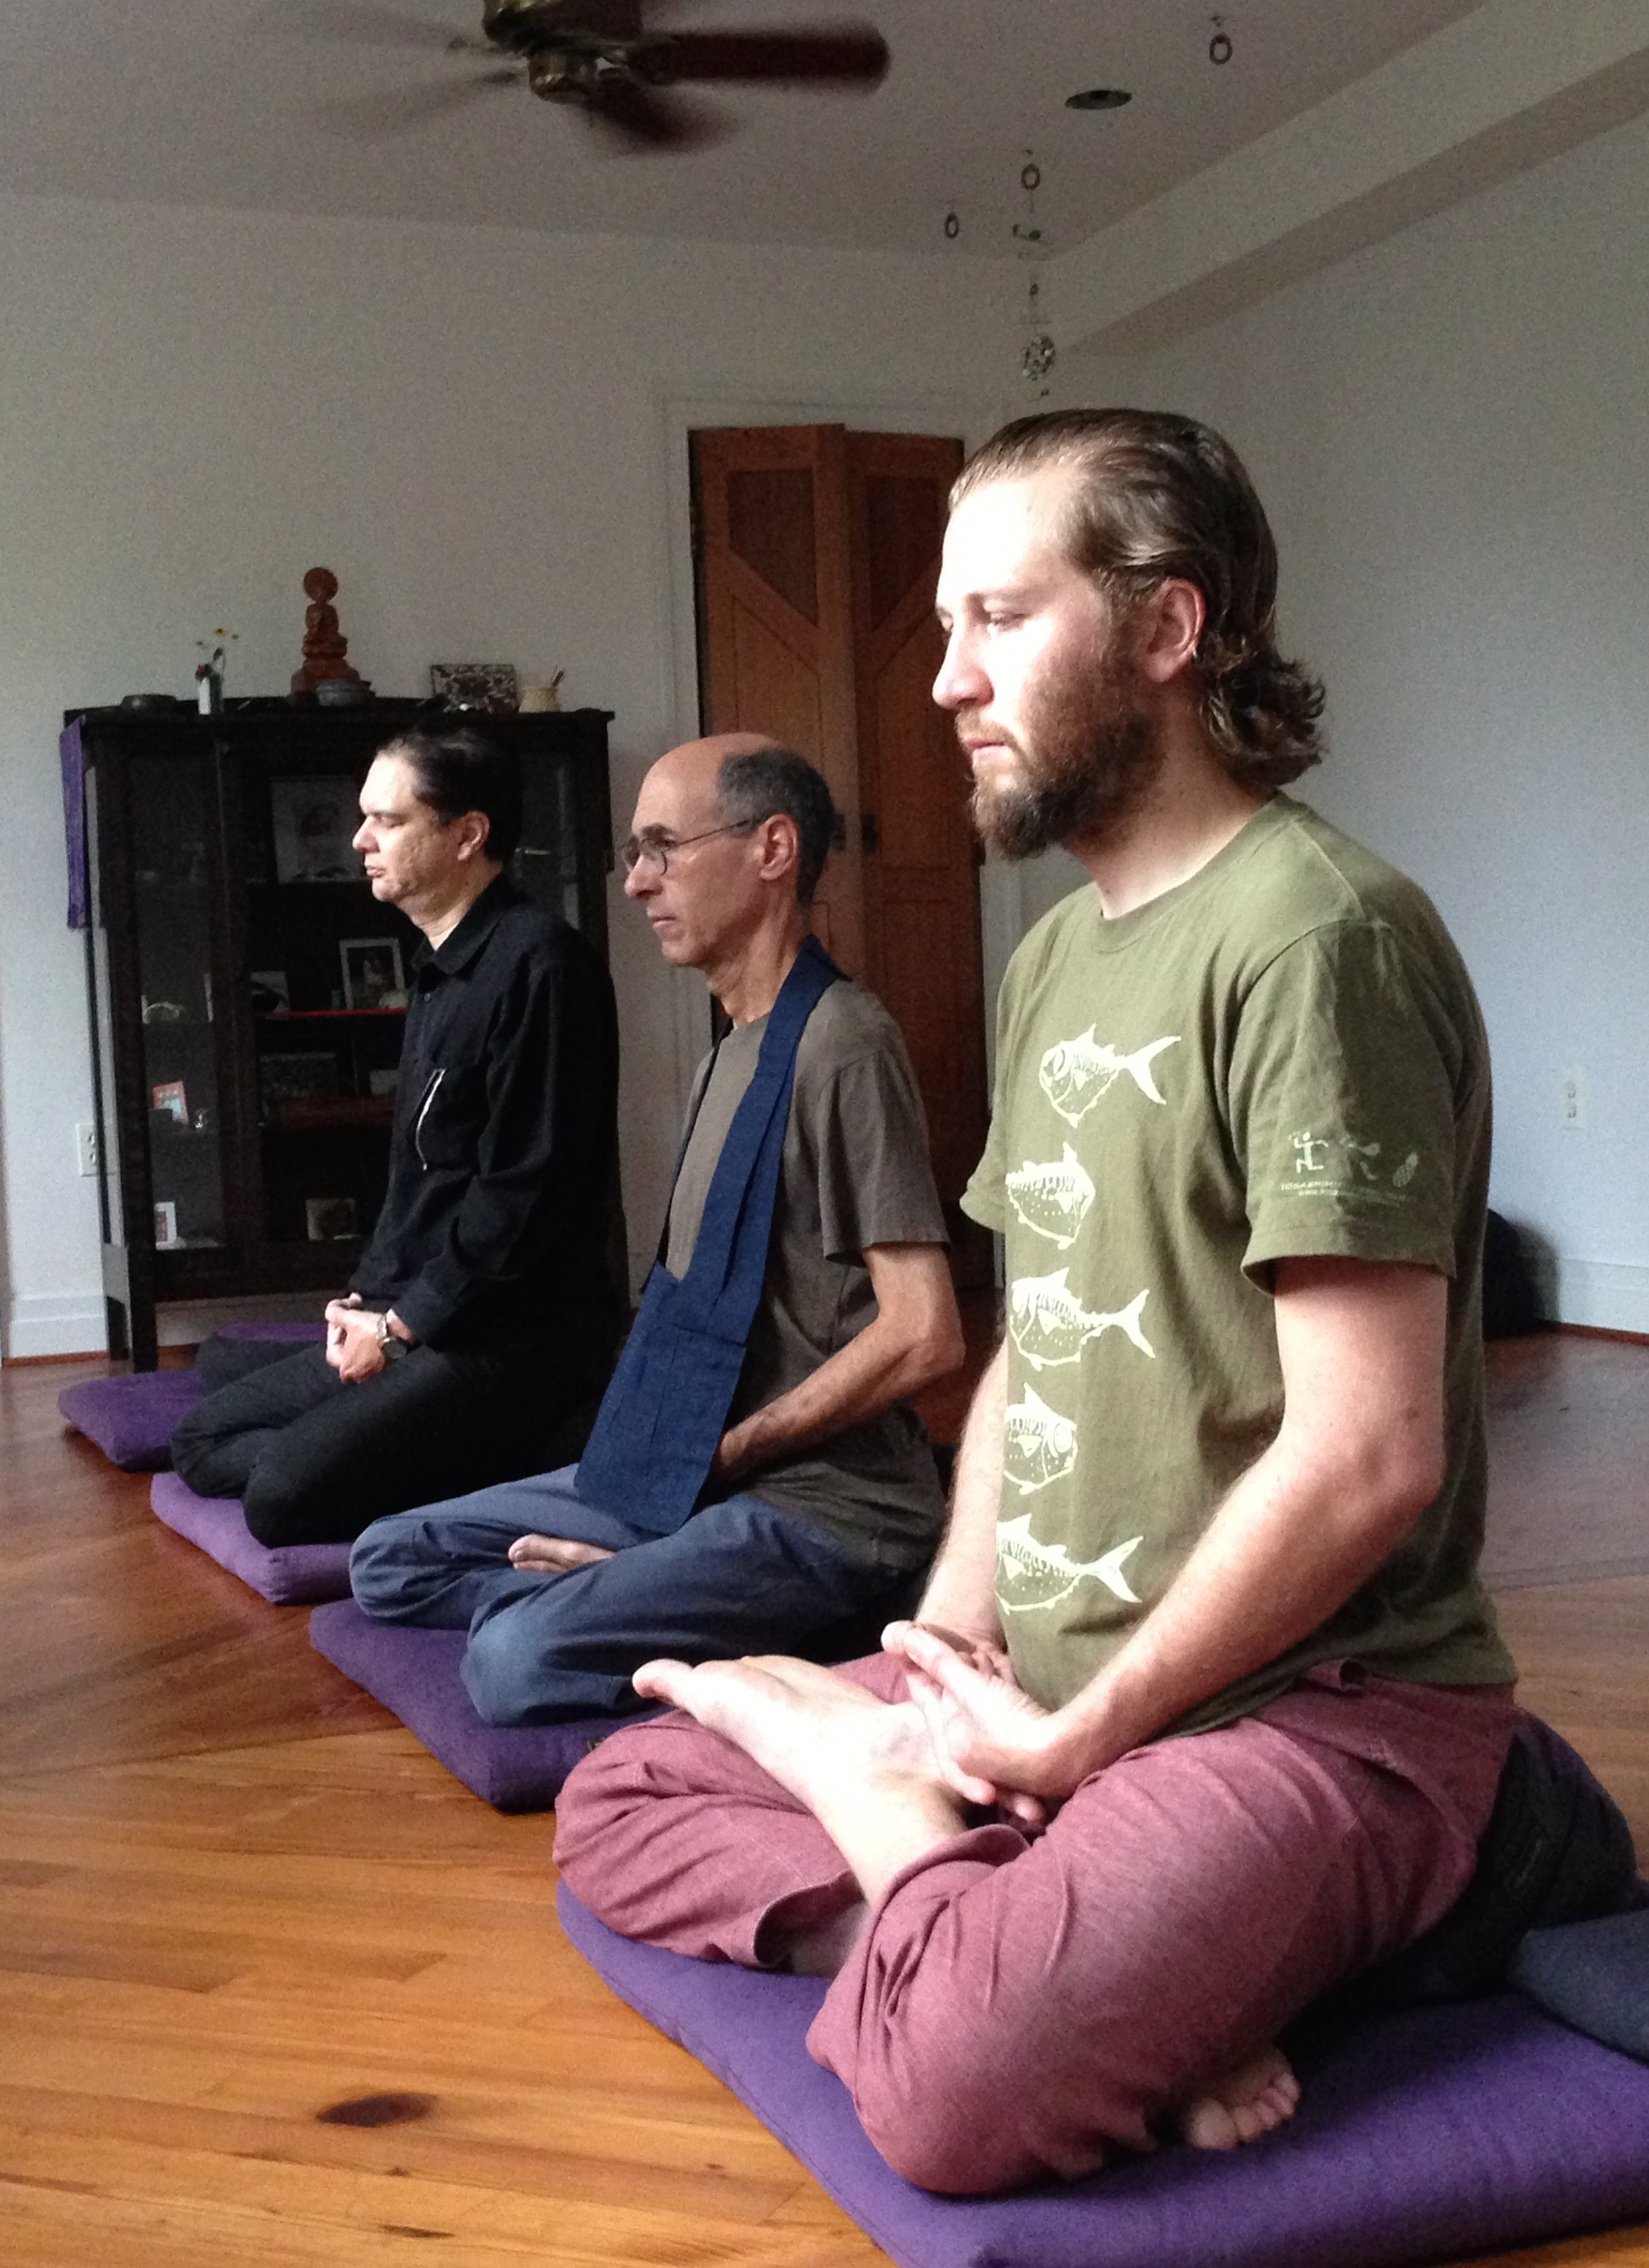 Morning Zazen Practice